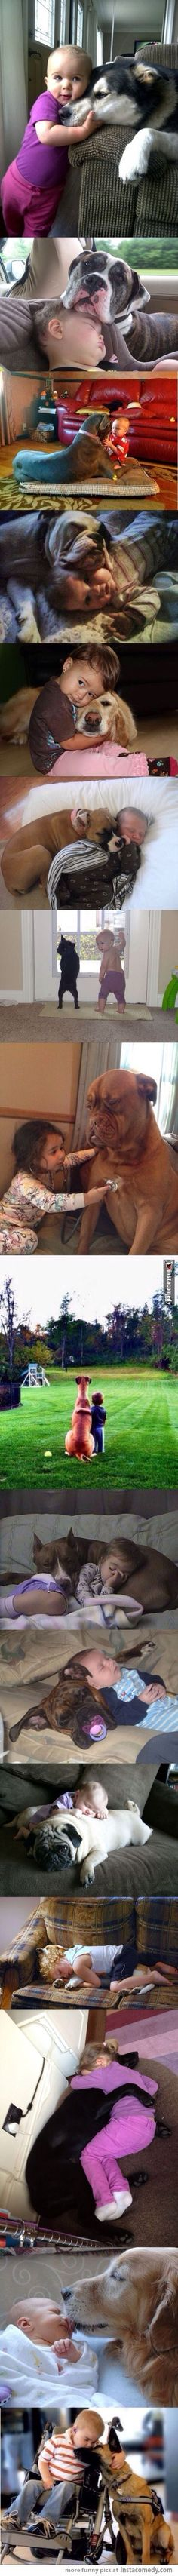 Kids and their dogs...too adorable!